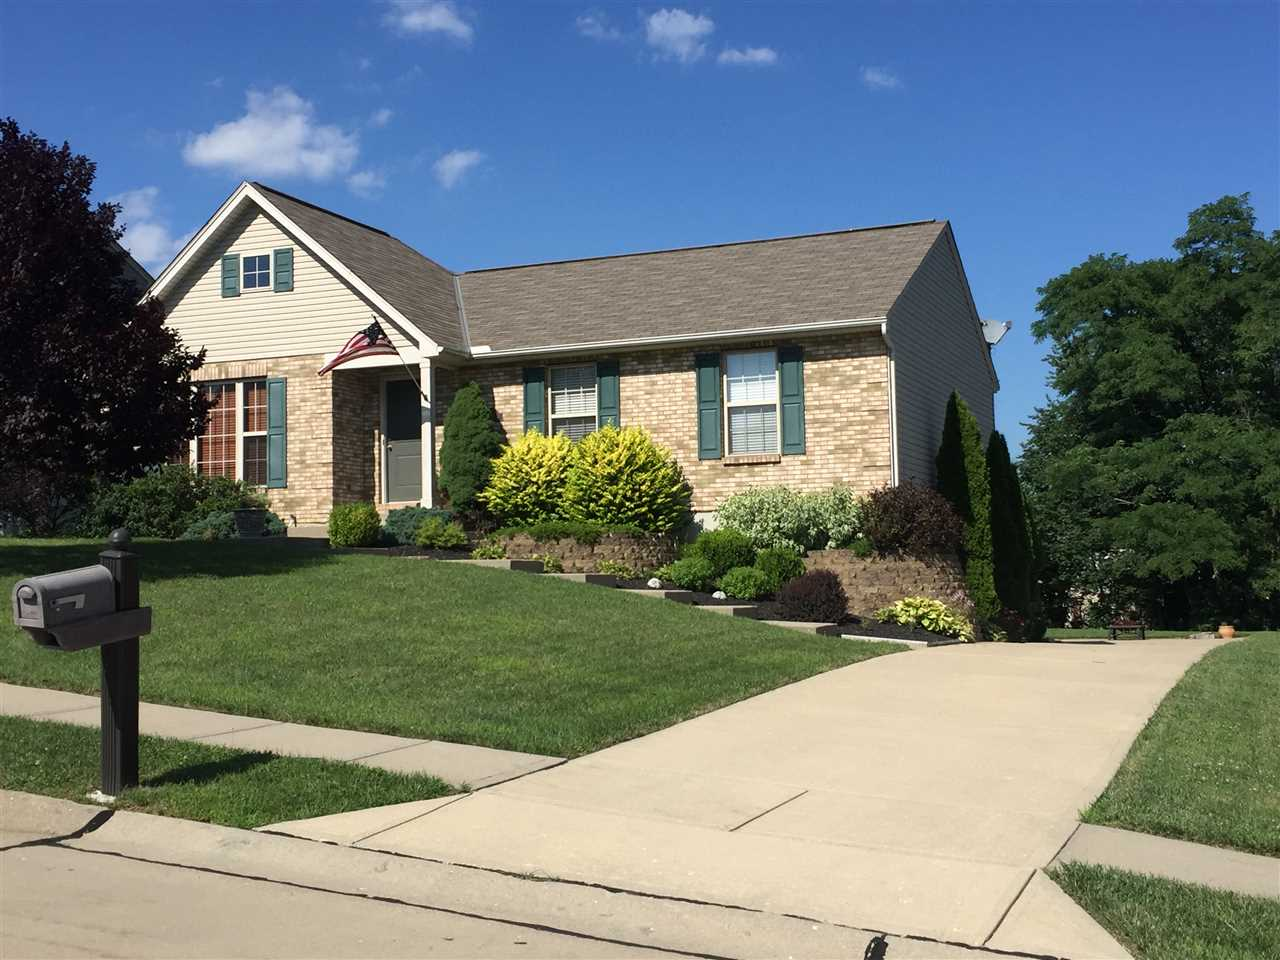 Photo 1 for 1187 Stoneman Independence, KY 41051